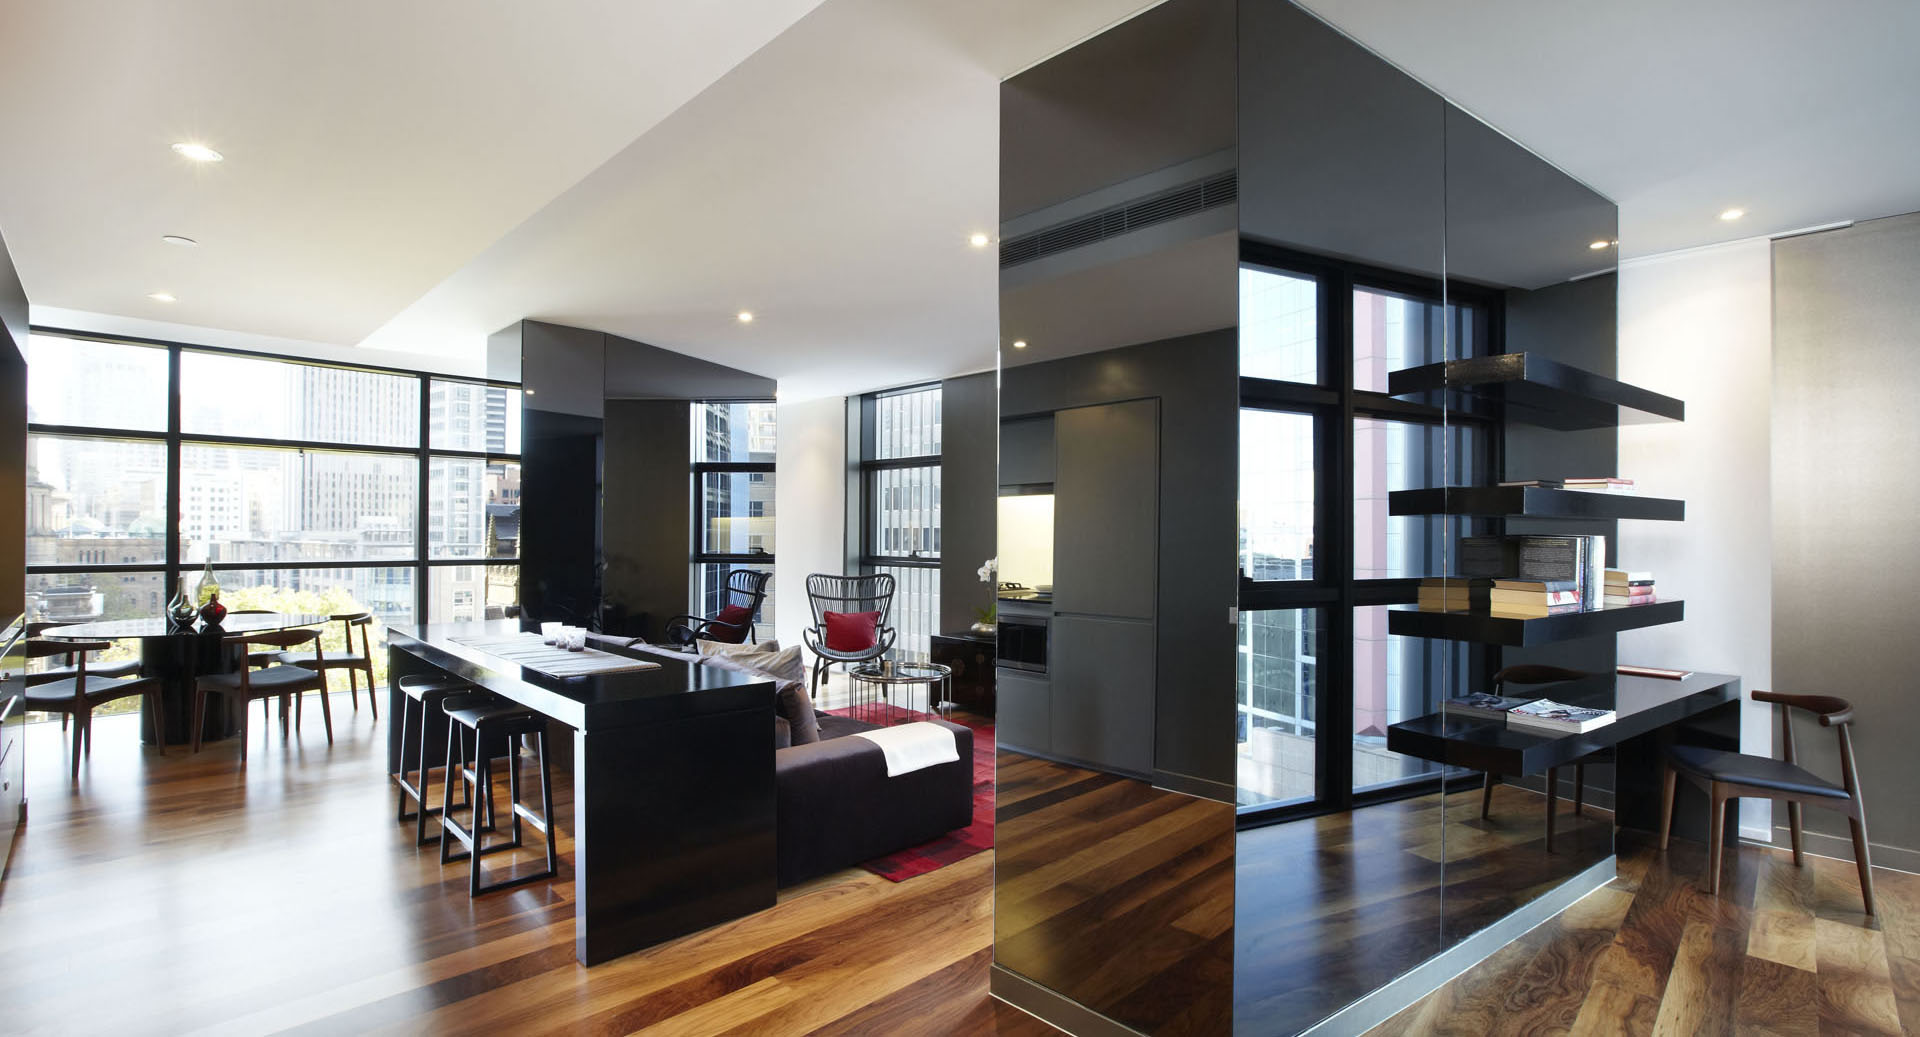 Design Apartment contemporary apartment designs in sydney | idesignarch | interior